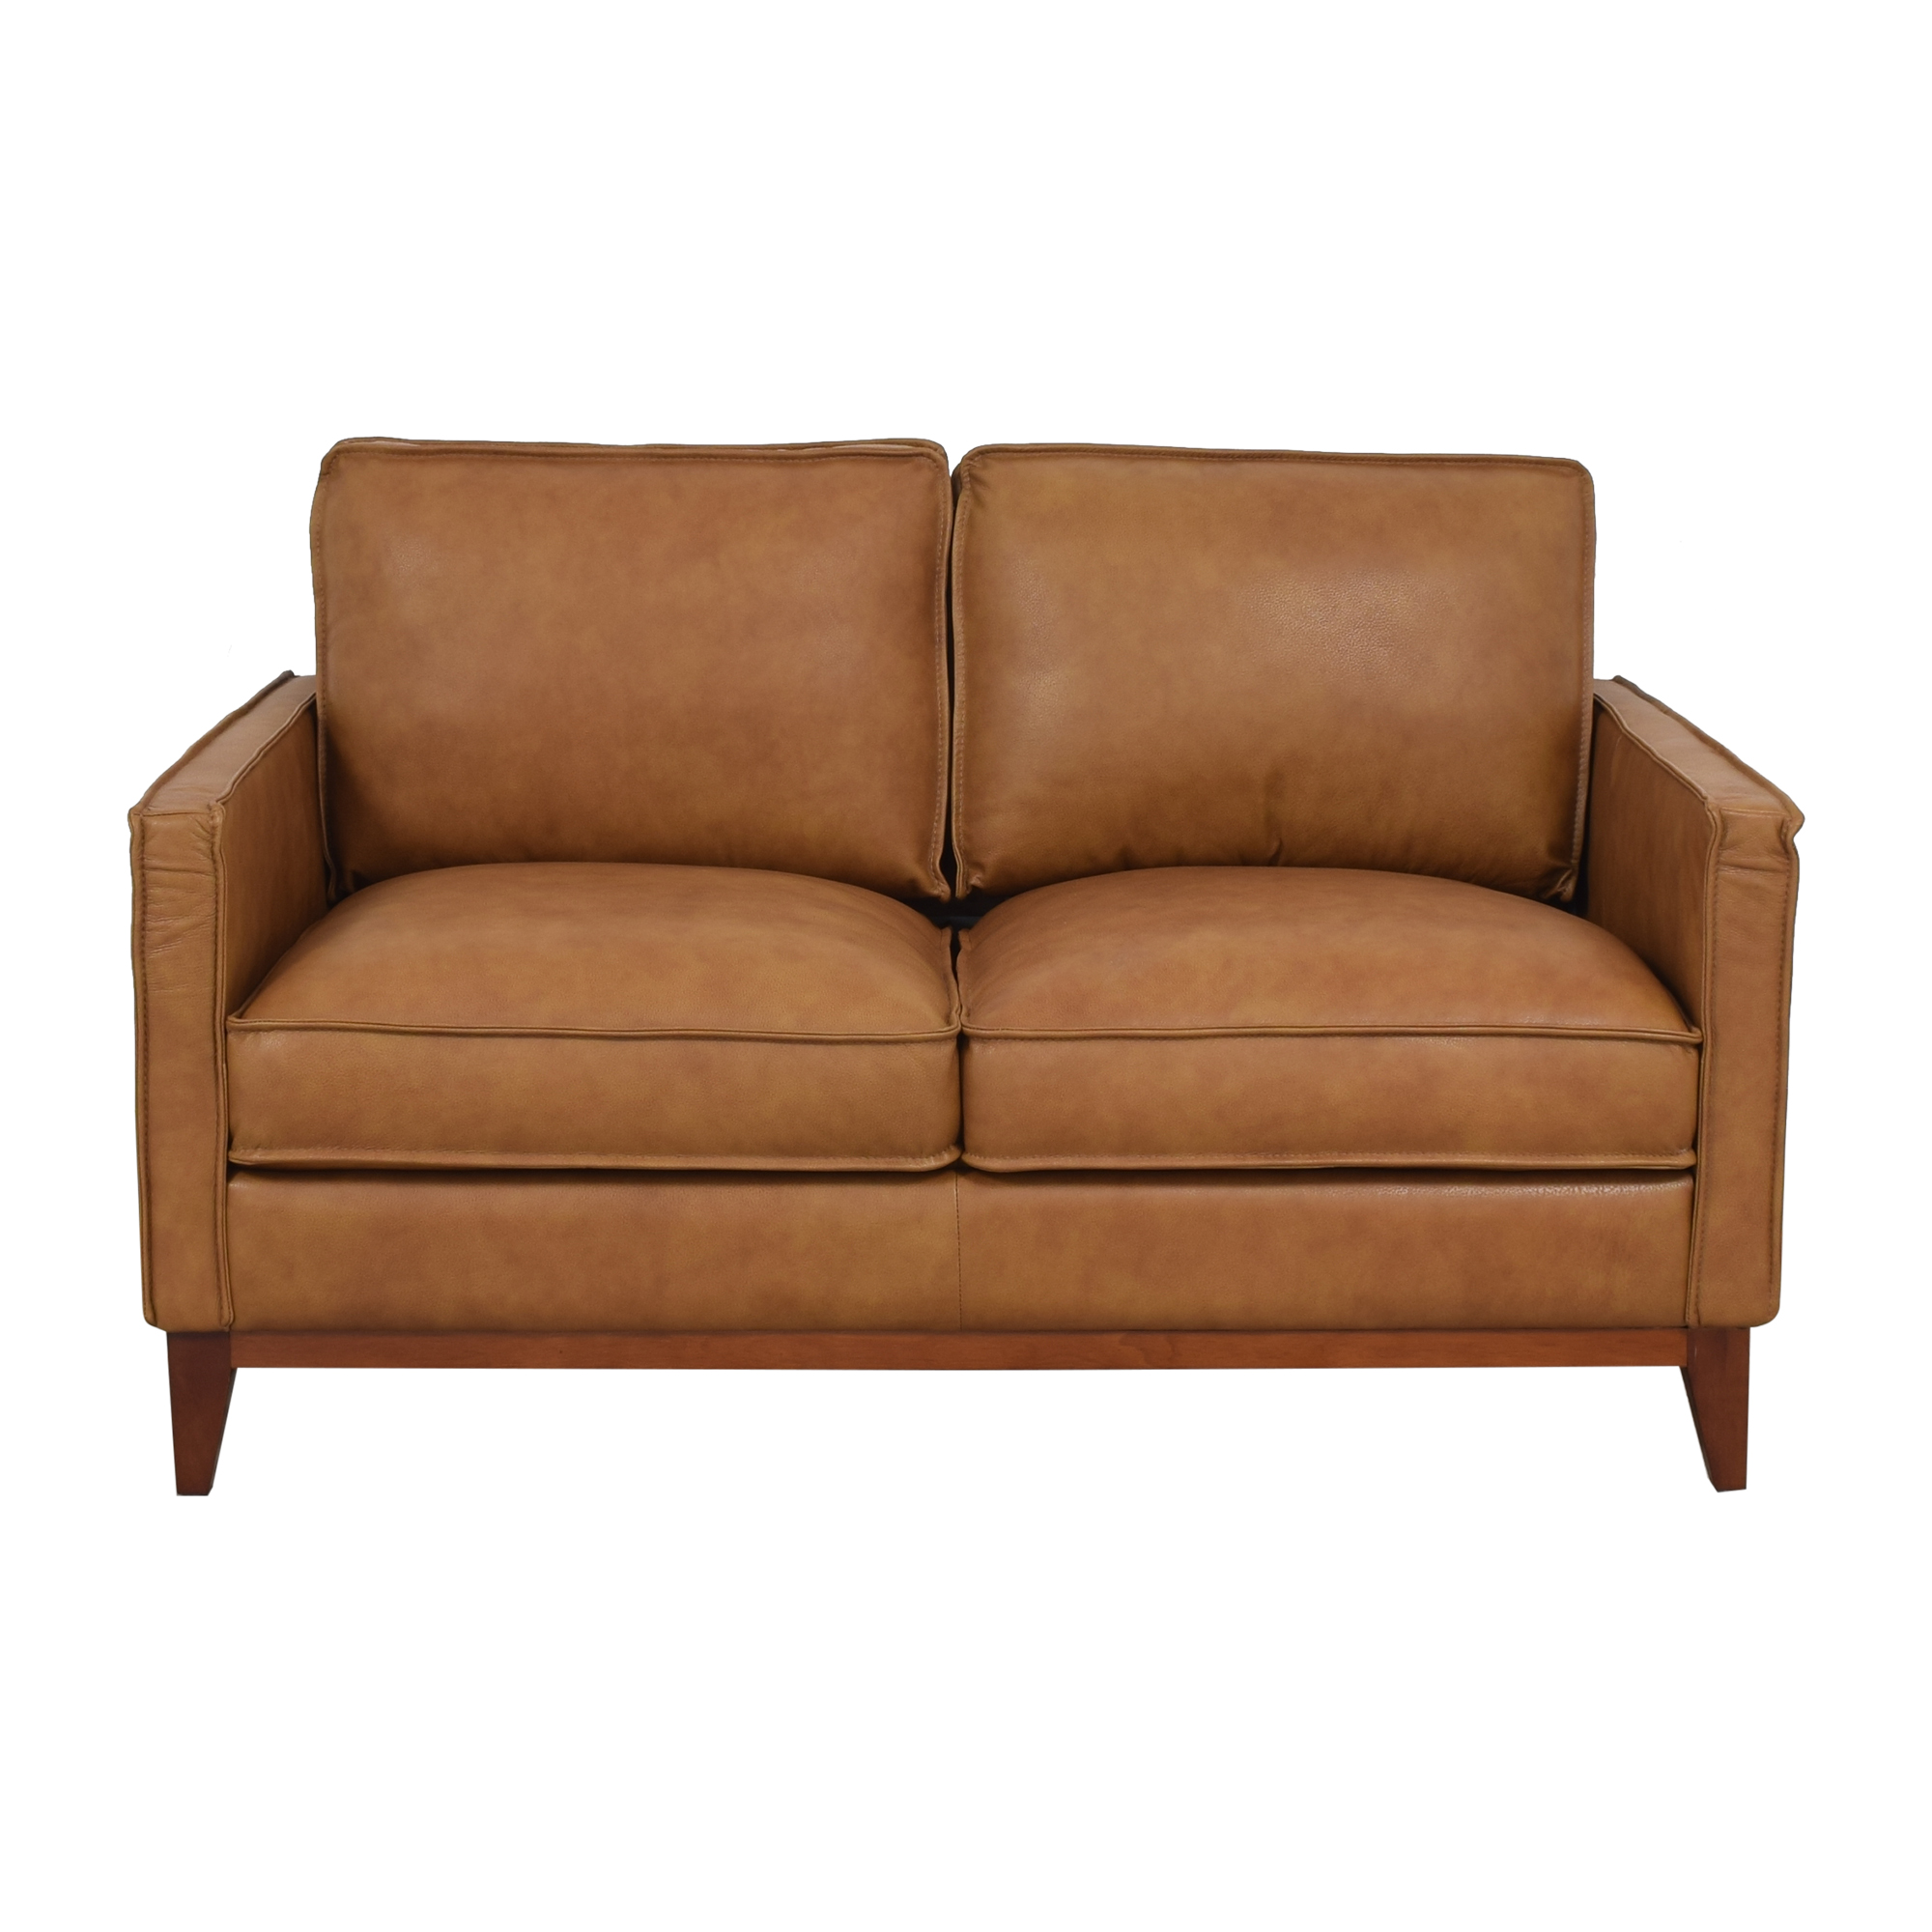 Leather Italia Leather Italia Newport Loveseat dimensions